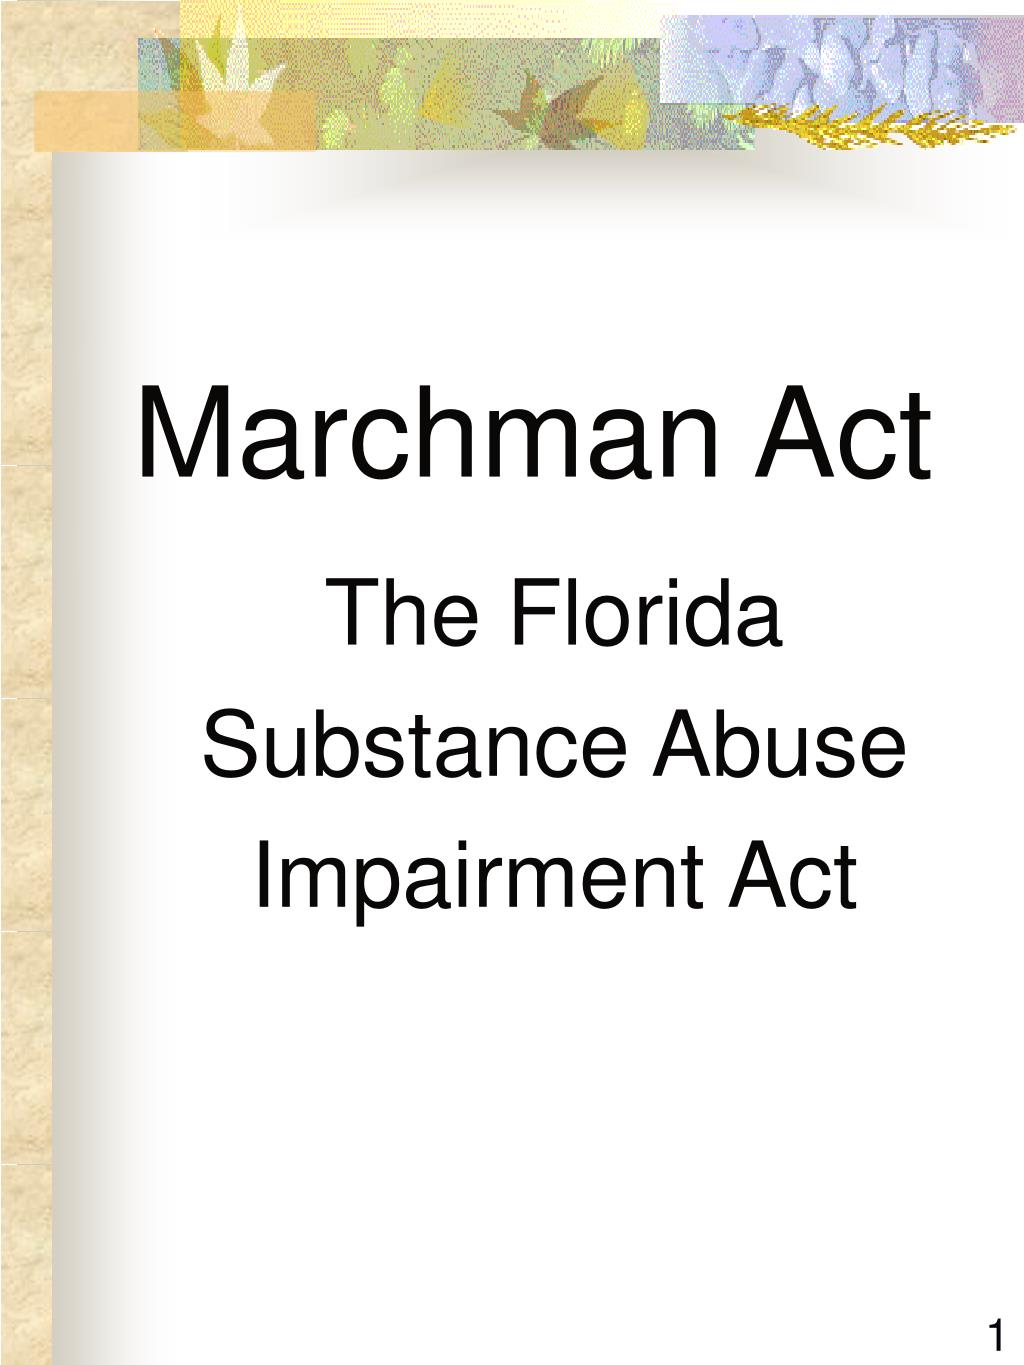 Marchman Act